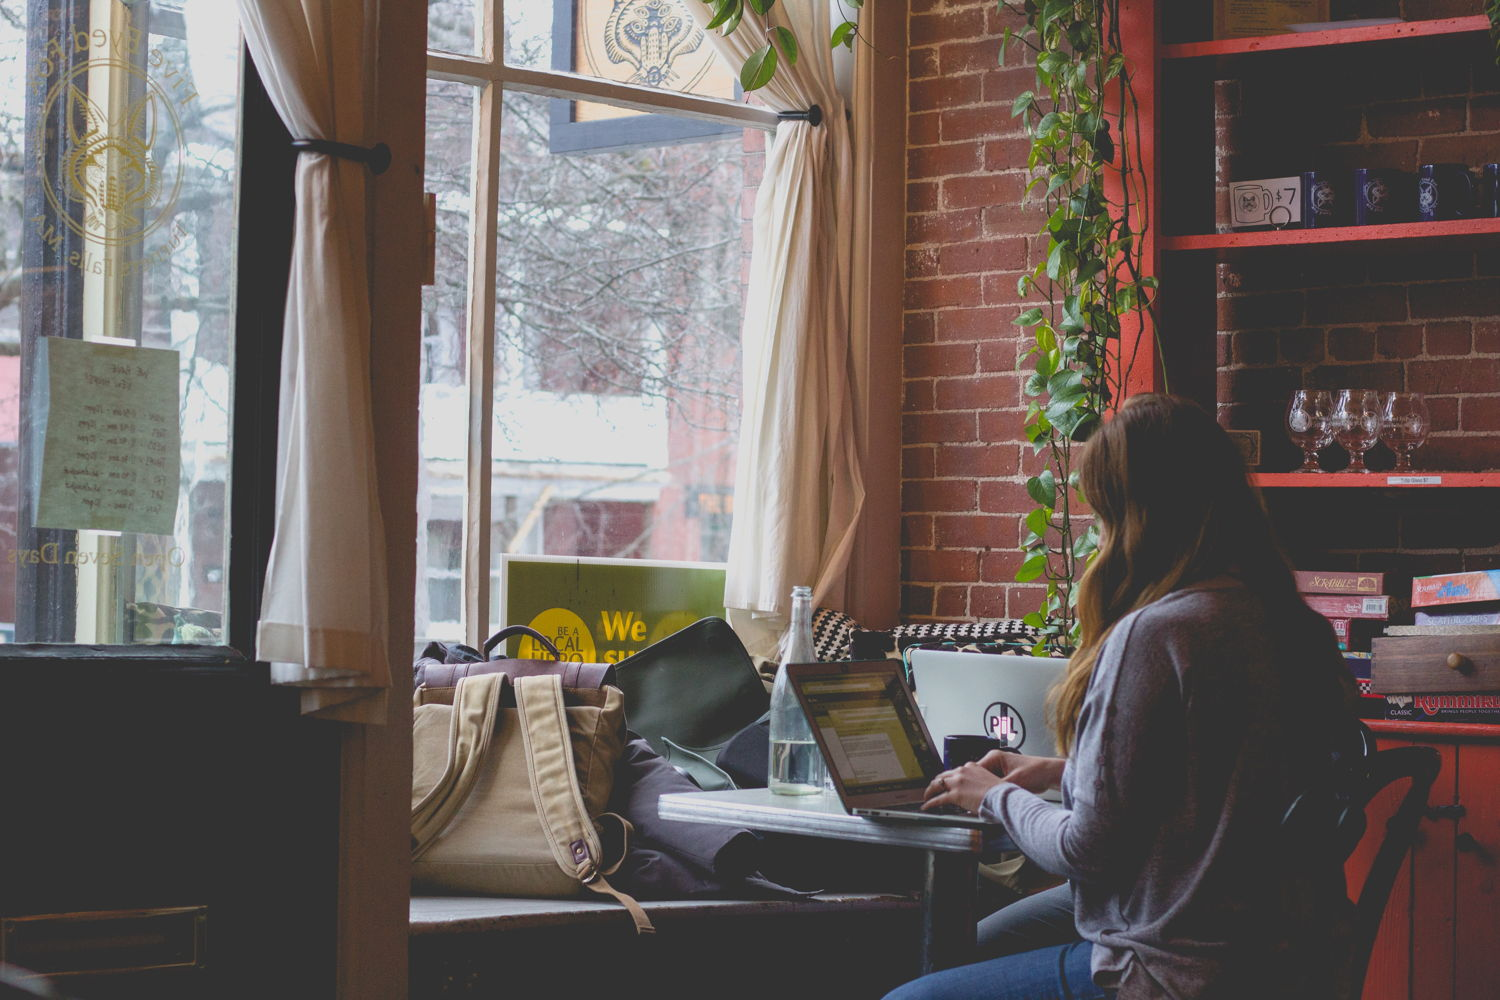 woman working on her computer at a coffee shop